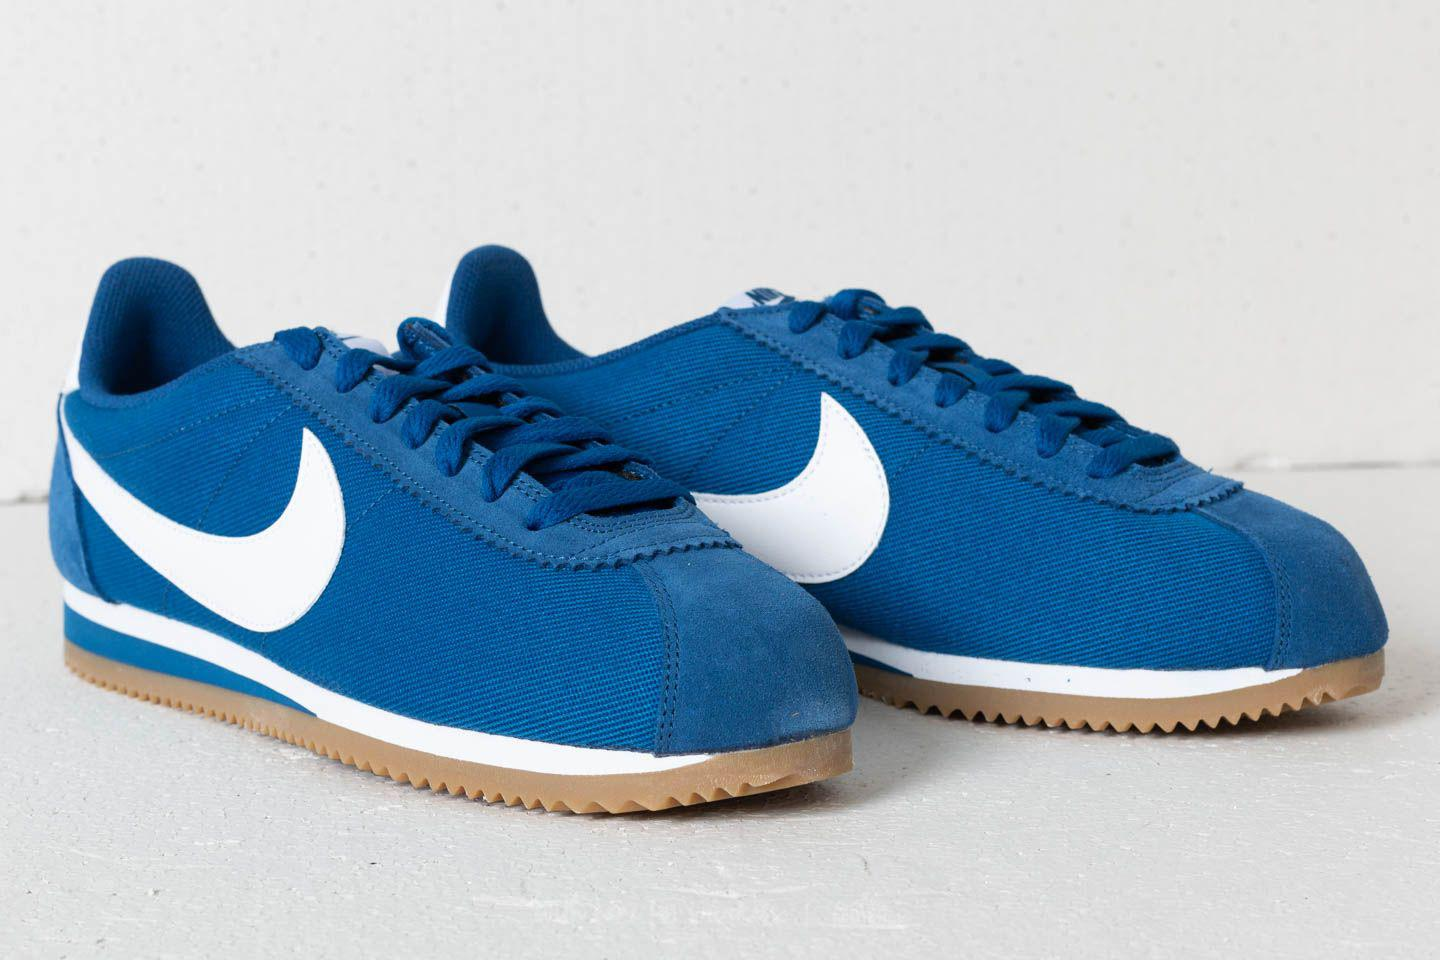 601aa764116 Lyst - Nike Classic Cortez Nylon Gym Blue  White-gum Light Brown in ...